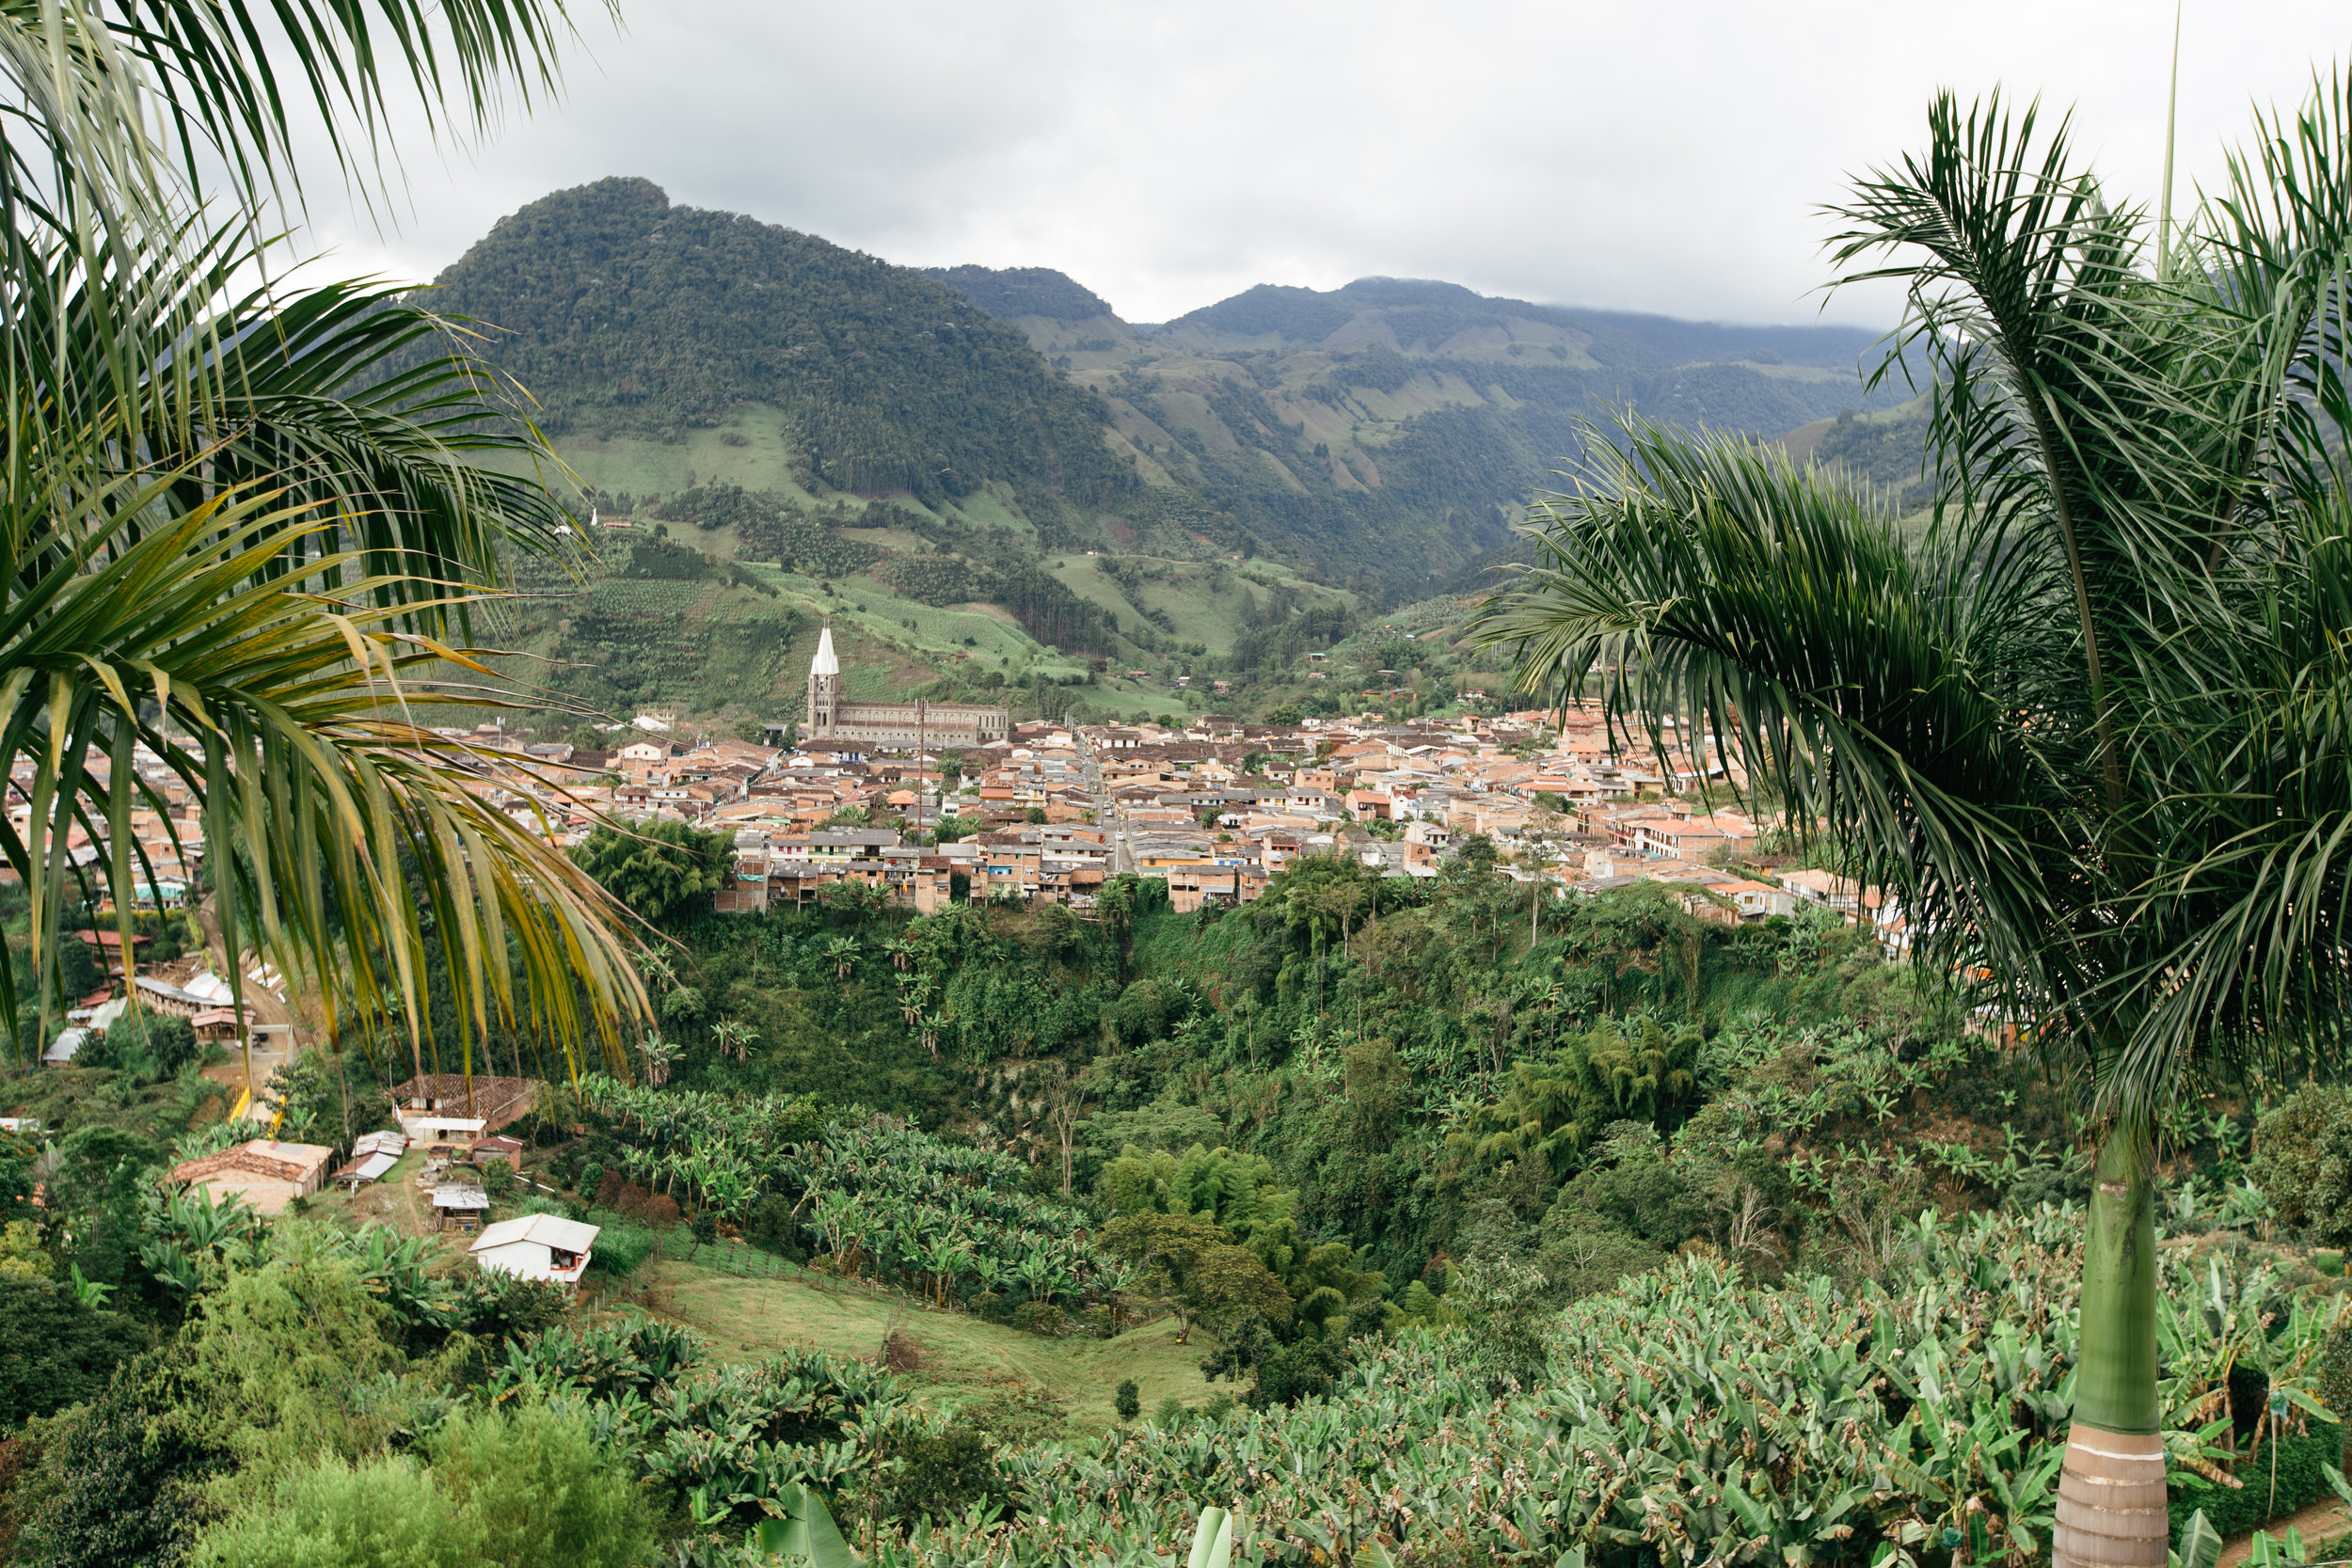 View of Jardín, a pueblo about a 3-hour drive from Medellín.